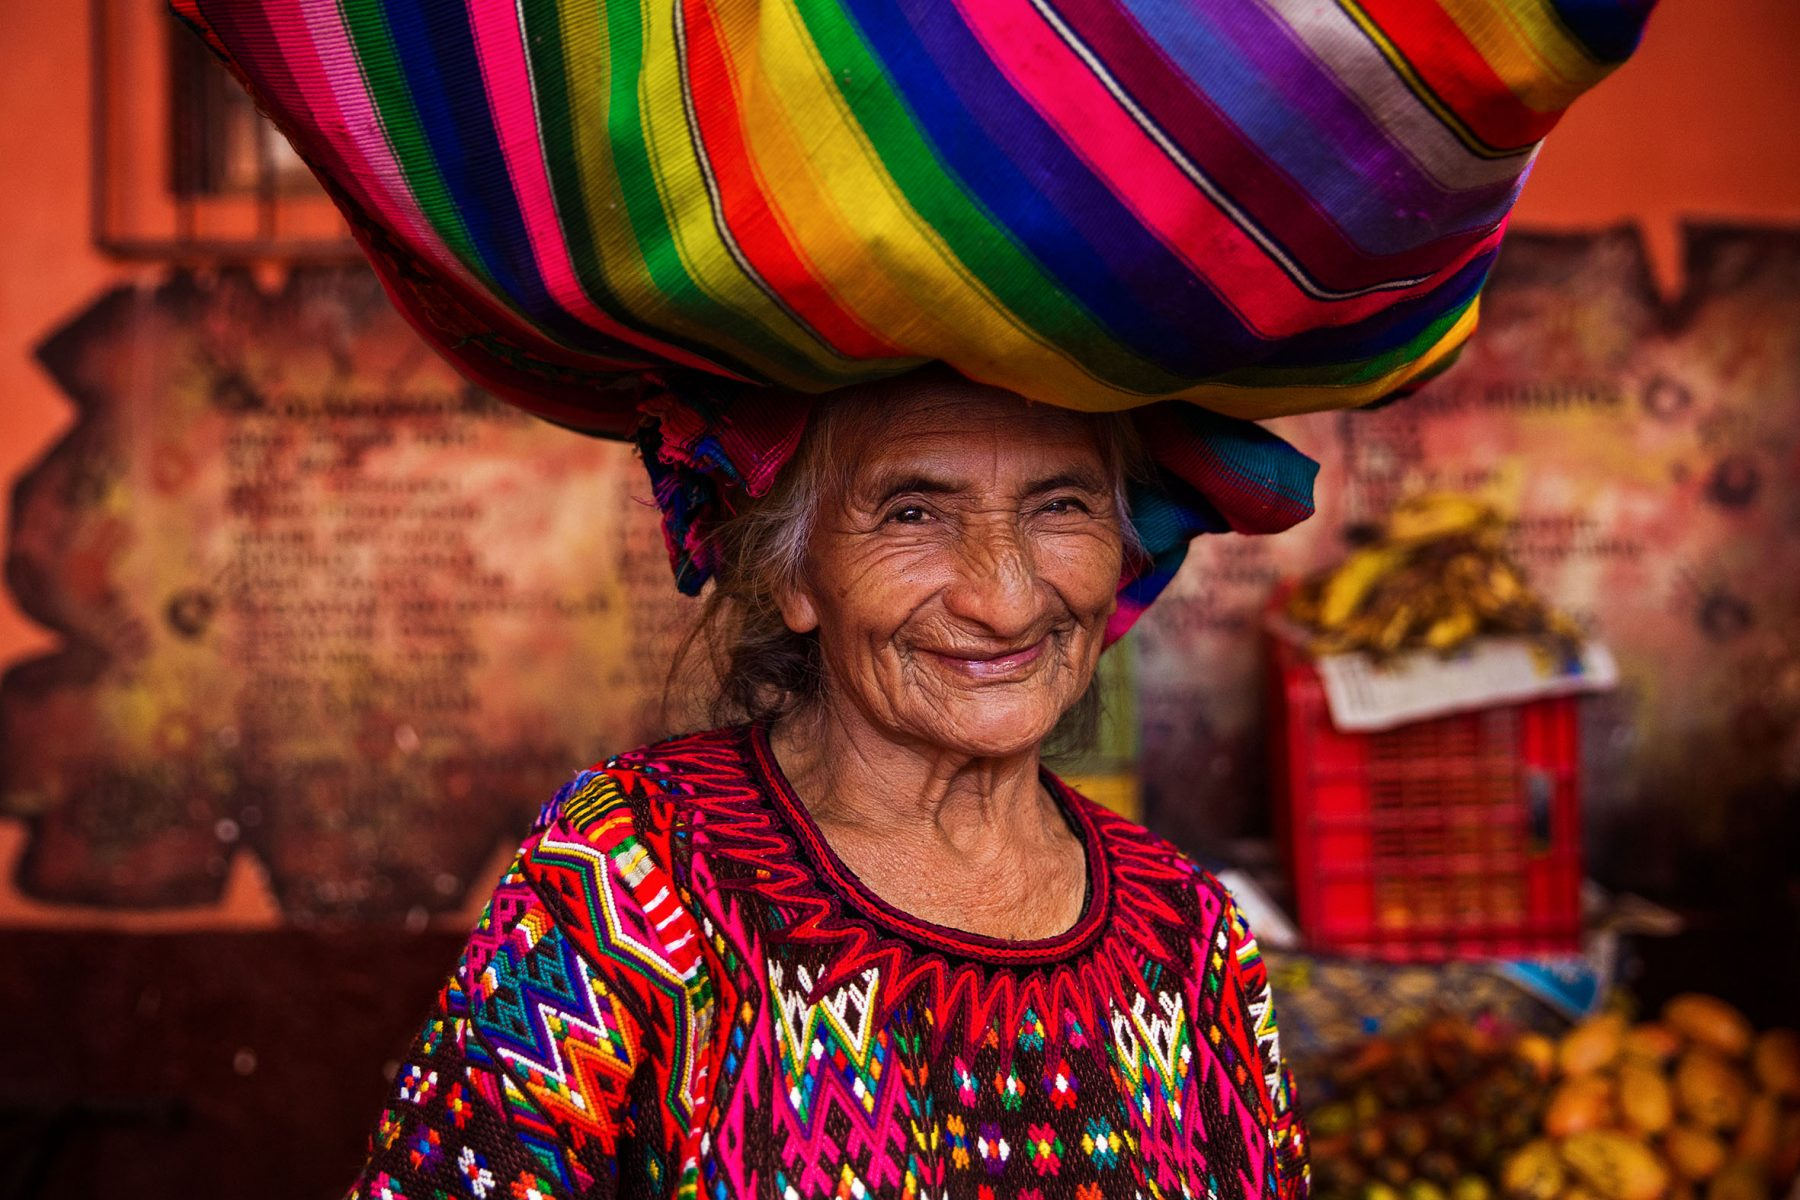 A woman from Guatemala -portrait photography in color by Mihaela Noroc, the atlas of beauty series